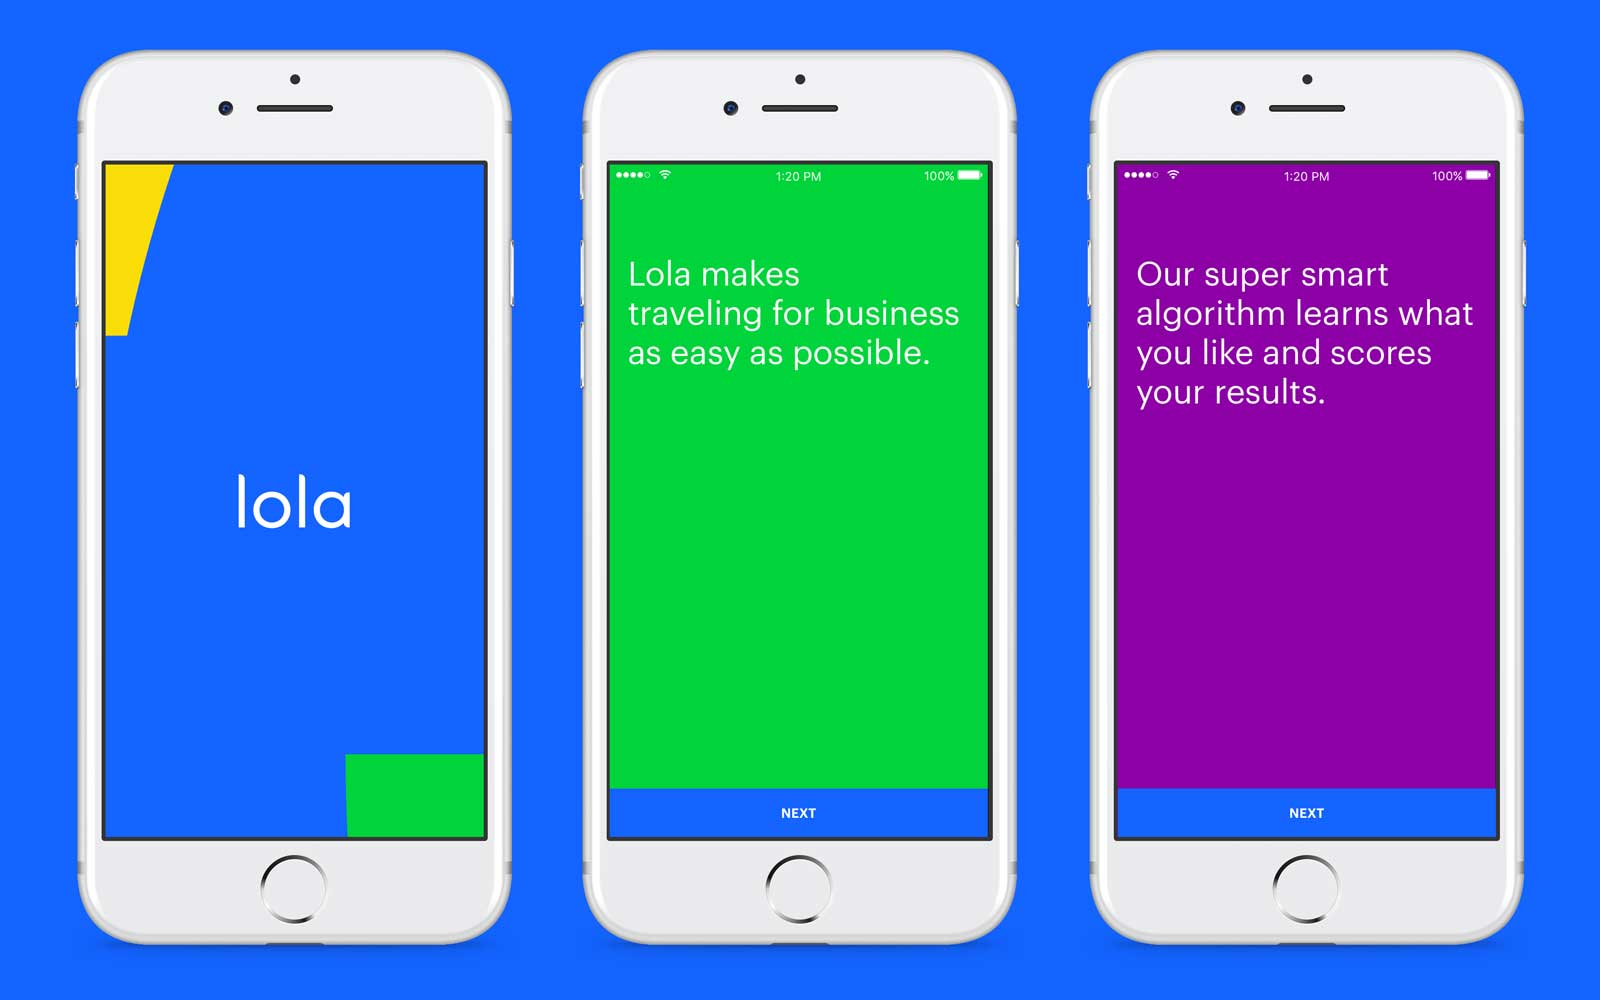 The Lola App Is Bringing Back the Golden Age of Business Travel